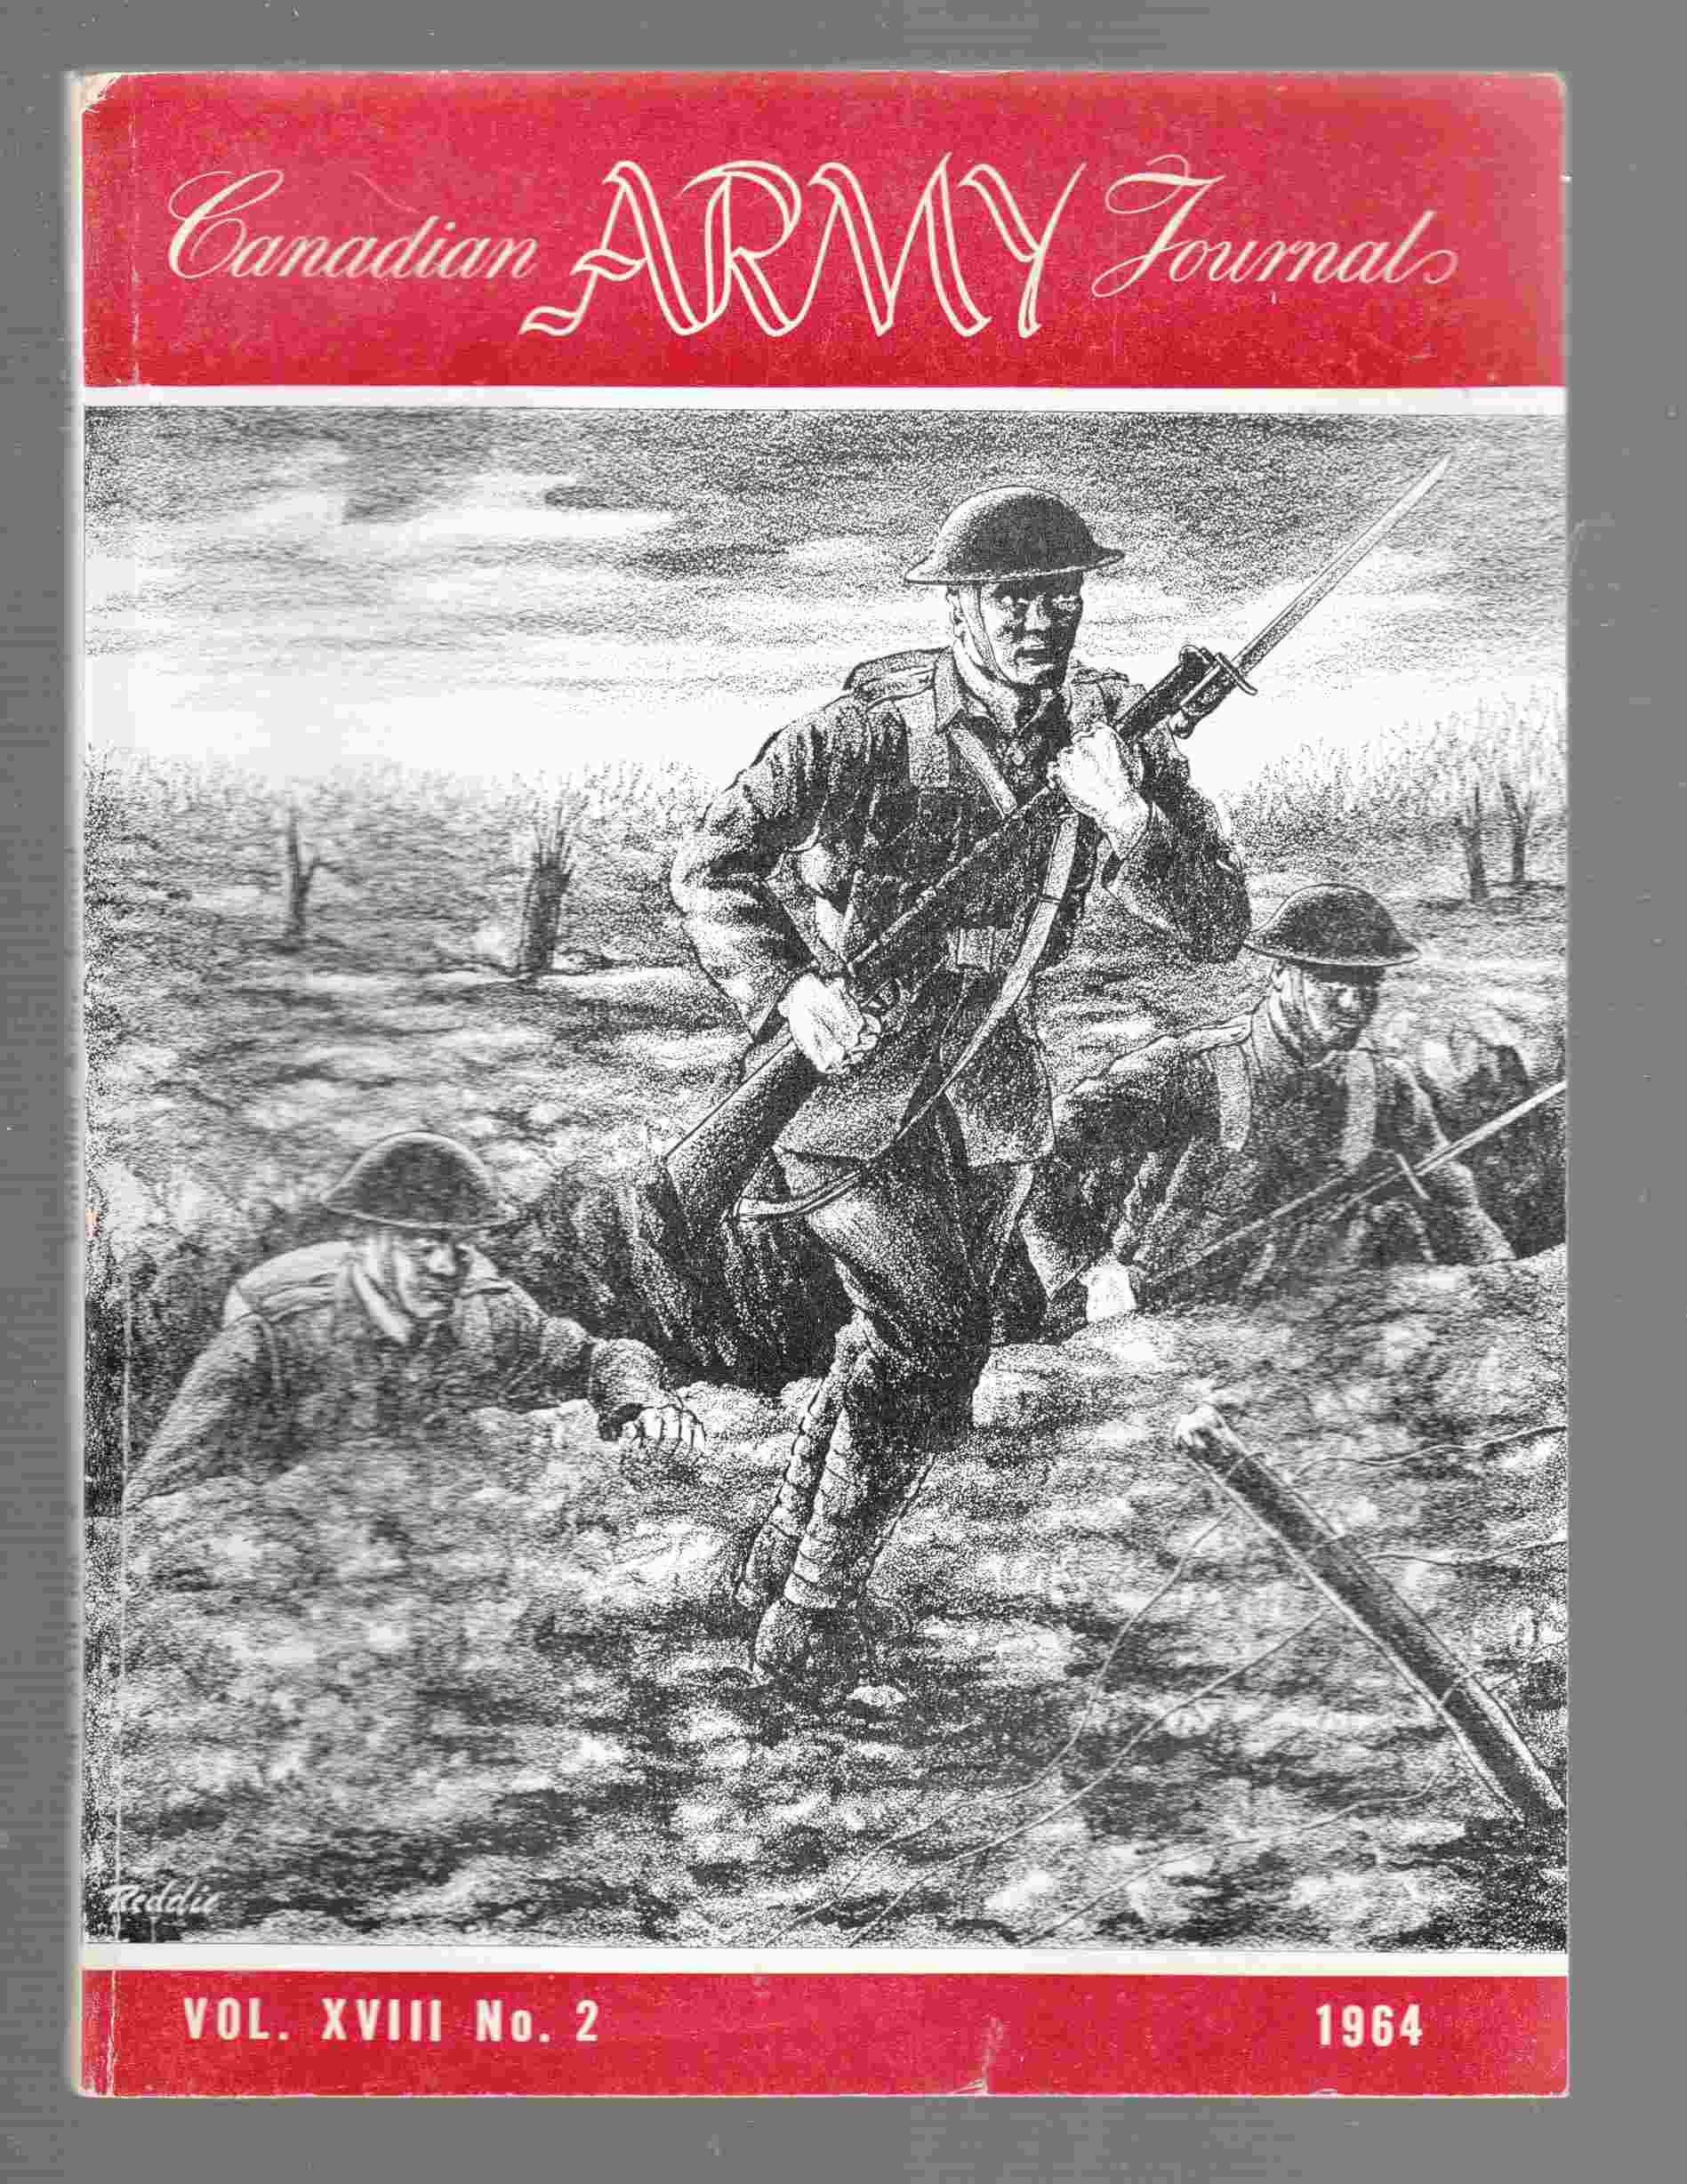 Image for The Canadian Army Journal Vol. XVIII No. 2 1964